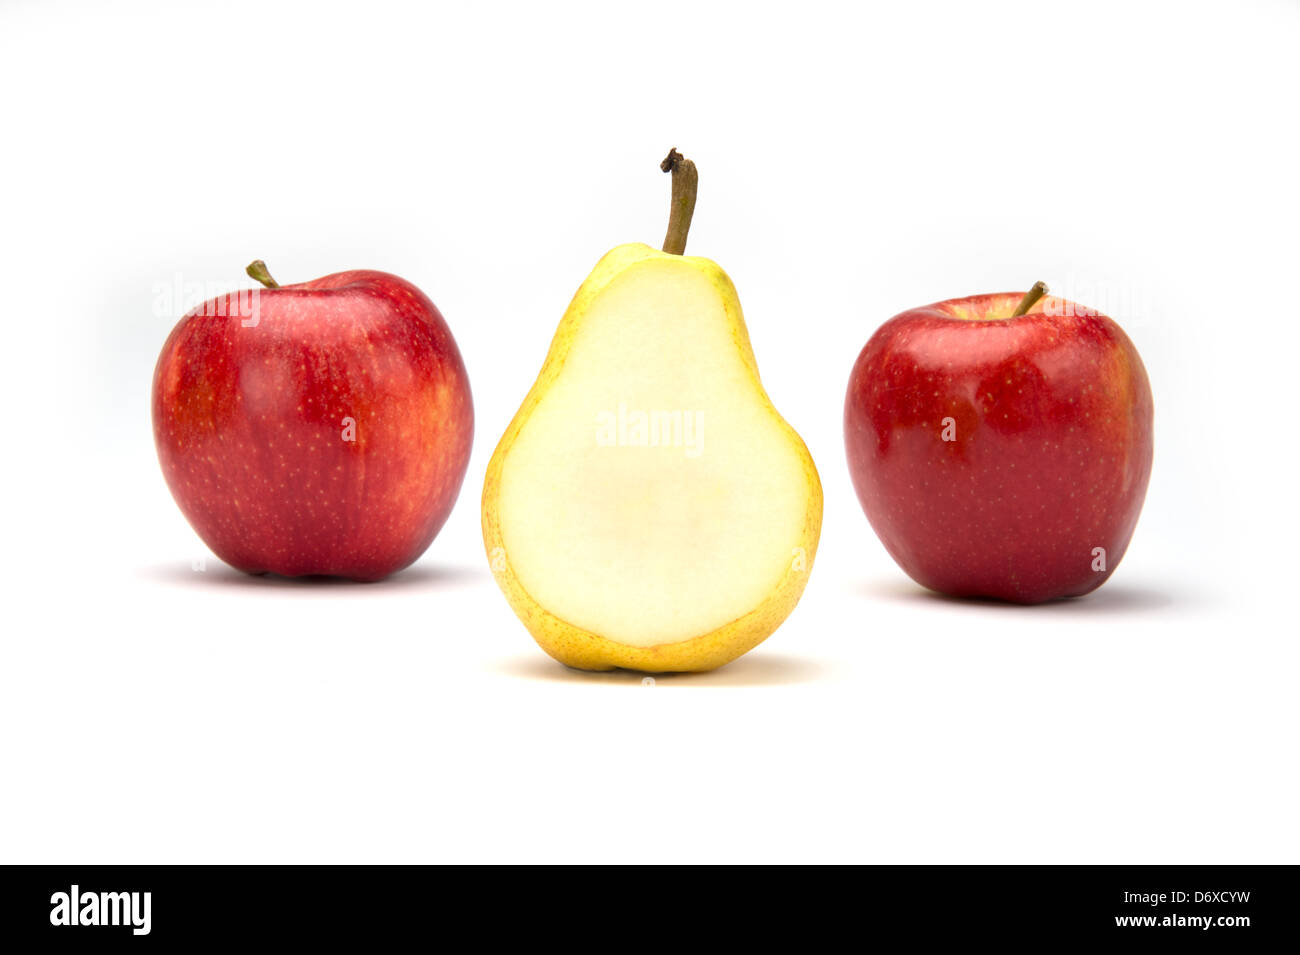 Two Royal Gala apples and a cut Bartlet pear in the center - Stock Image